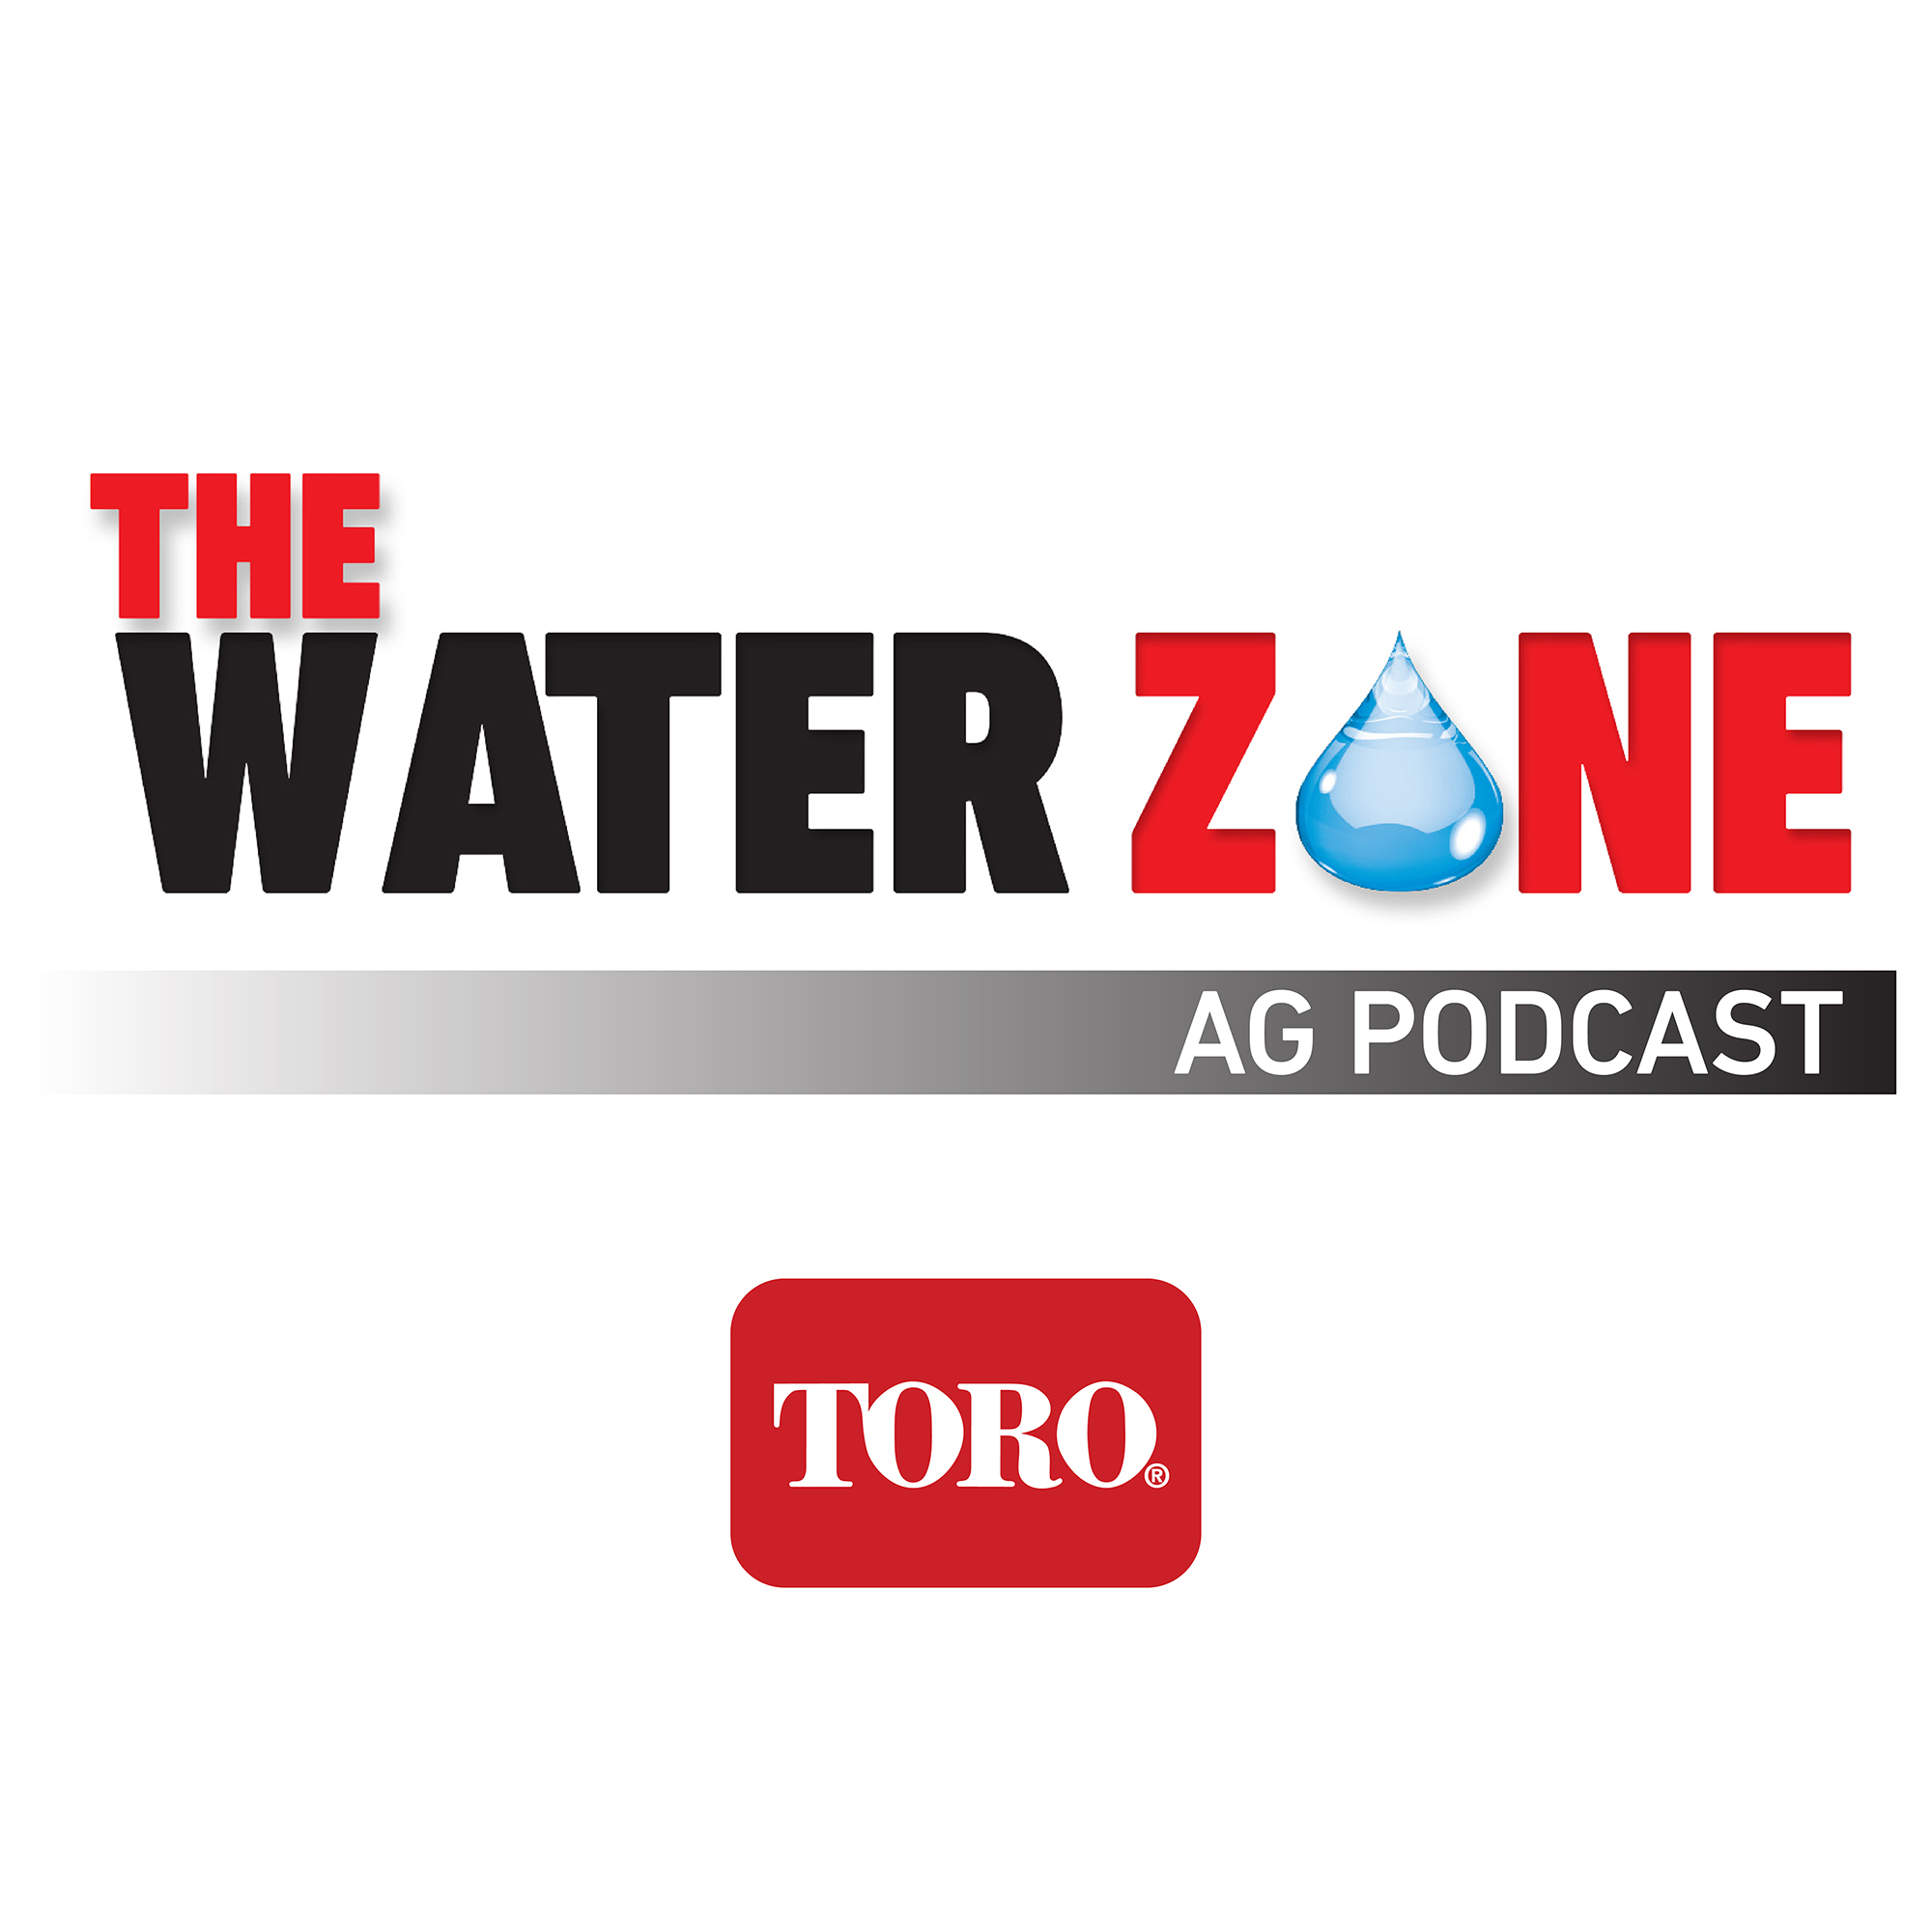 The Water Zone AG Podcast